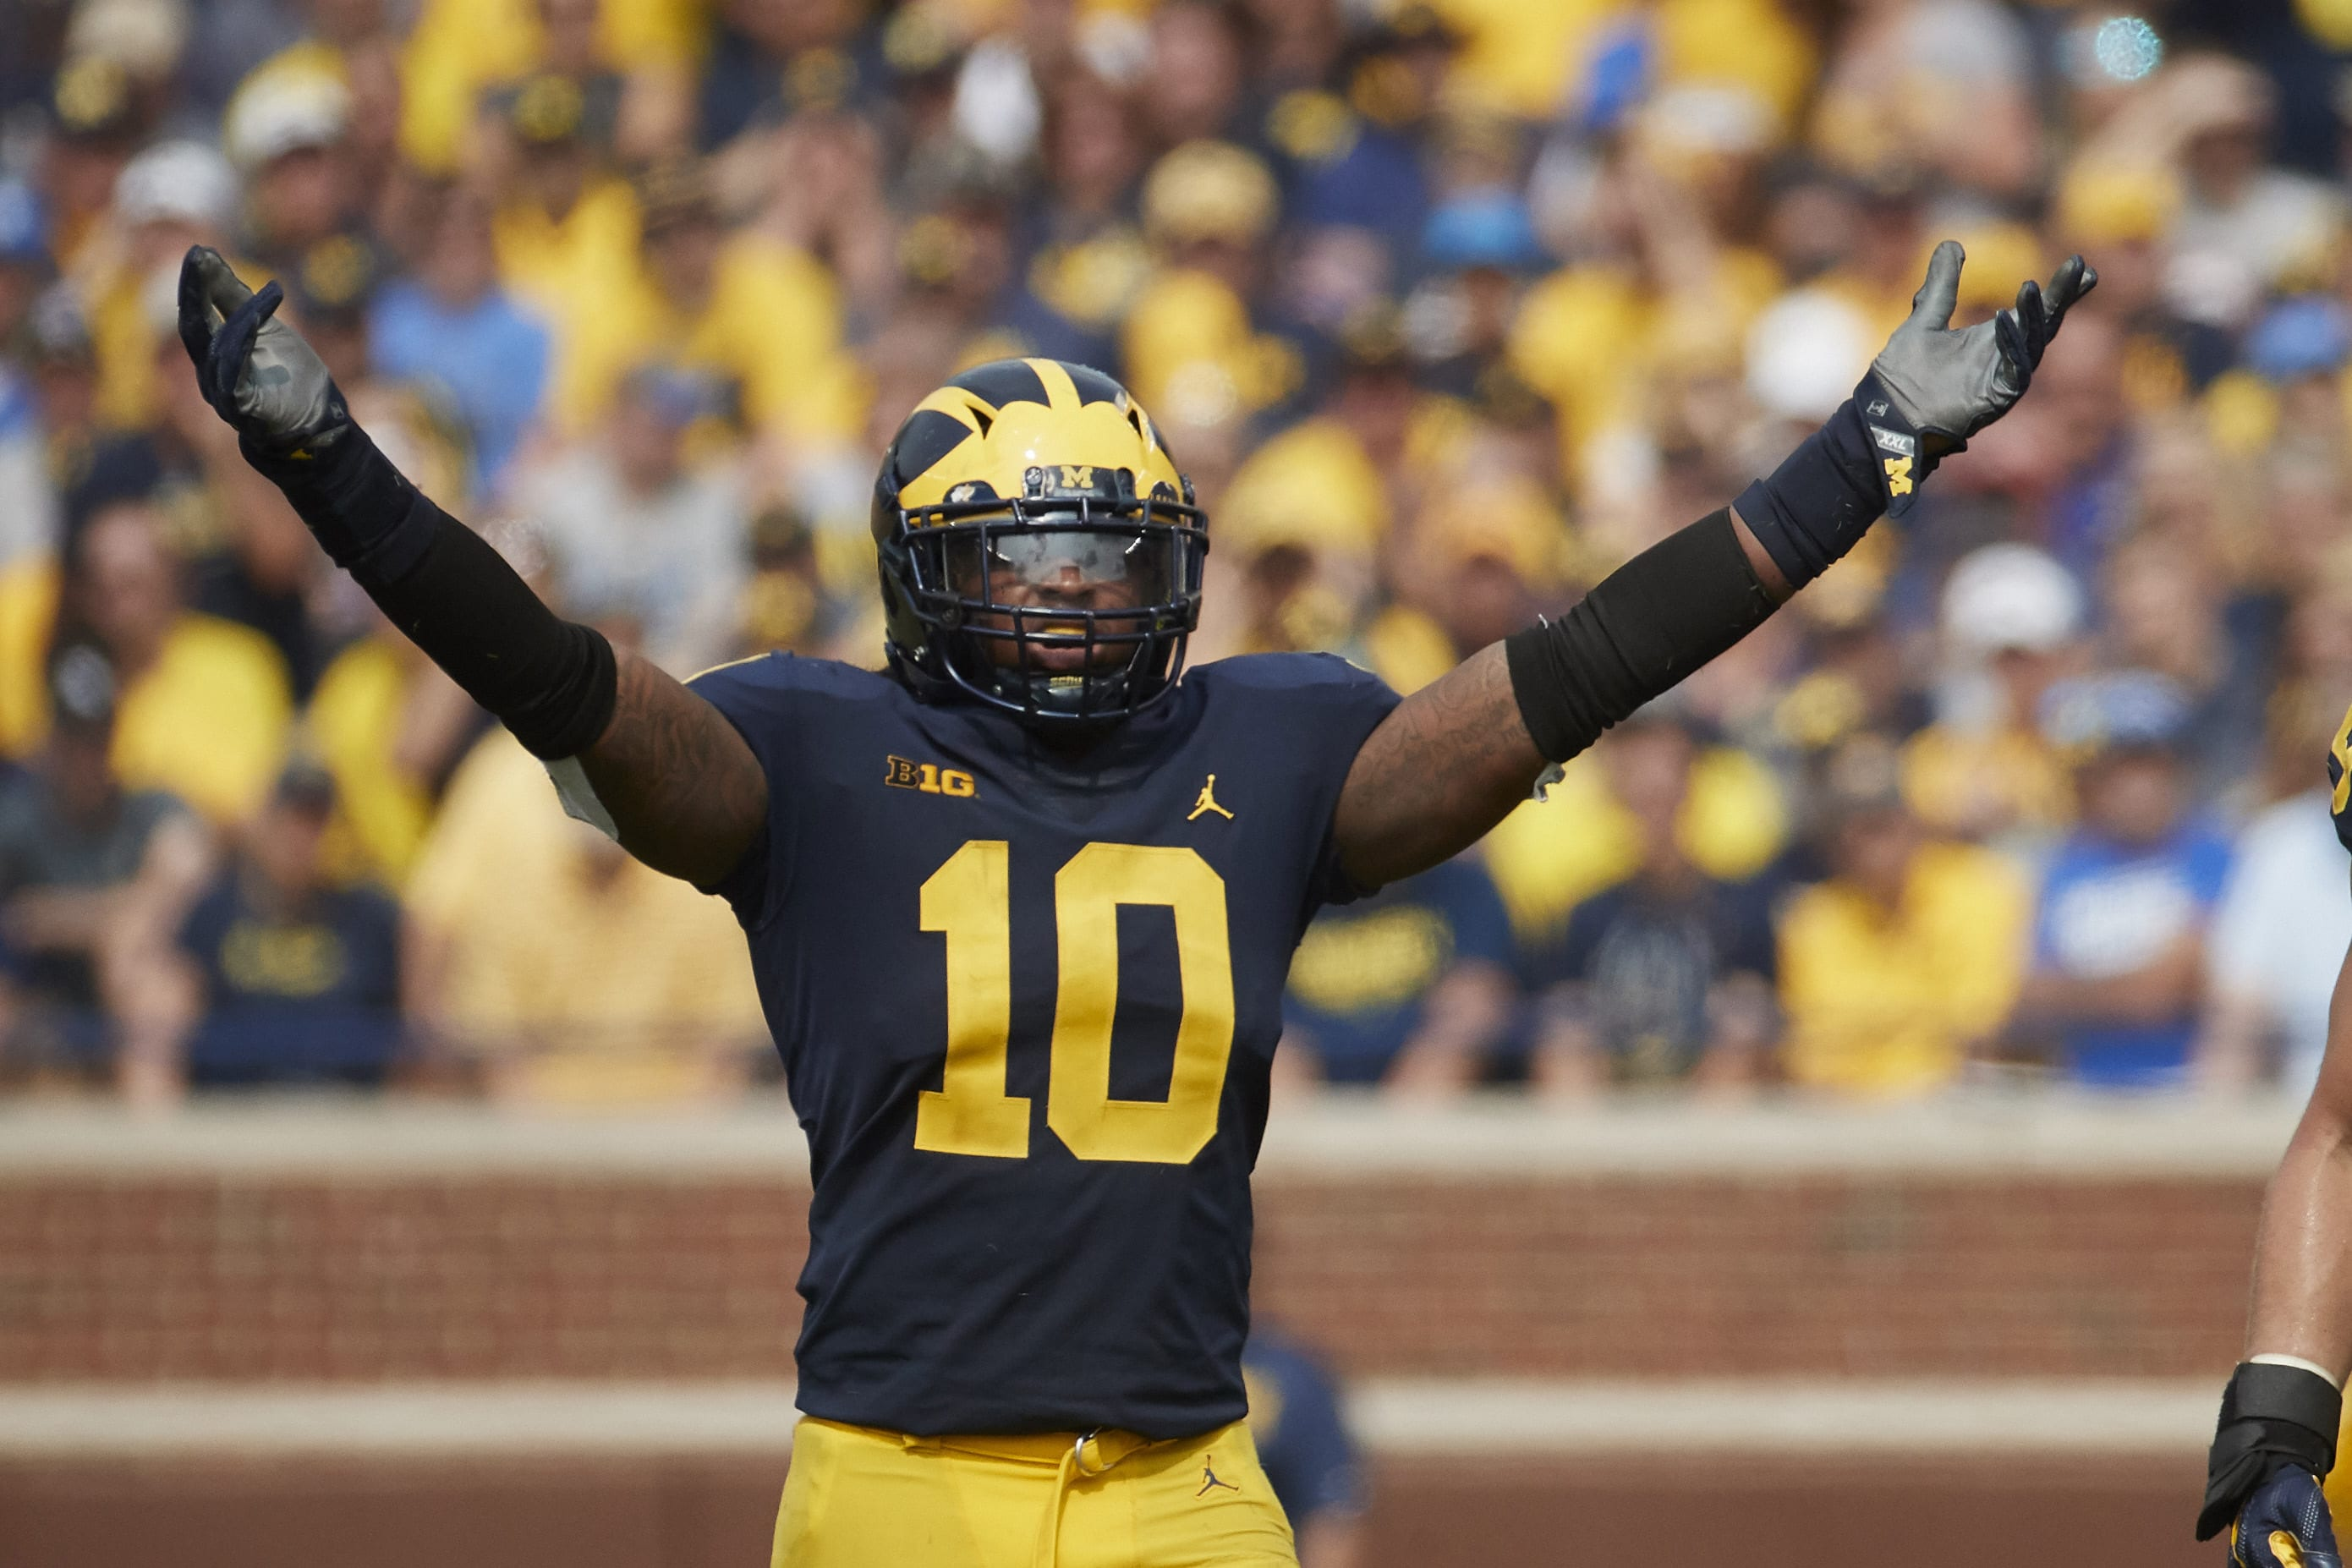 The New York Giants should consider Devin Bush in the 2019 NFL Draft.